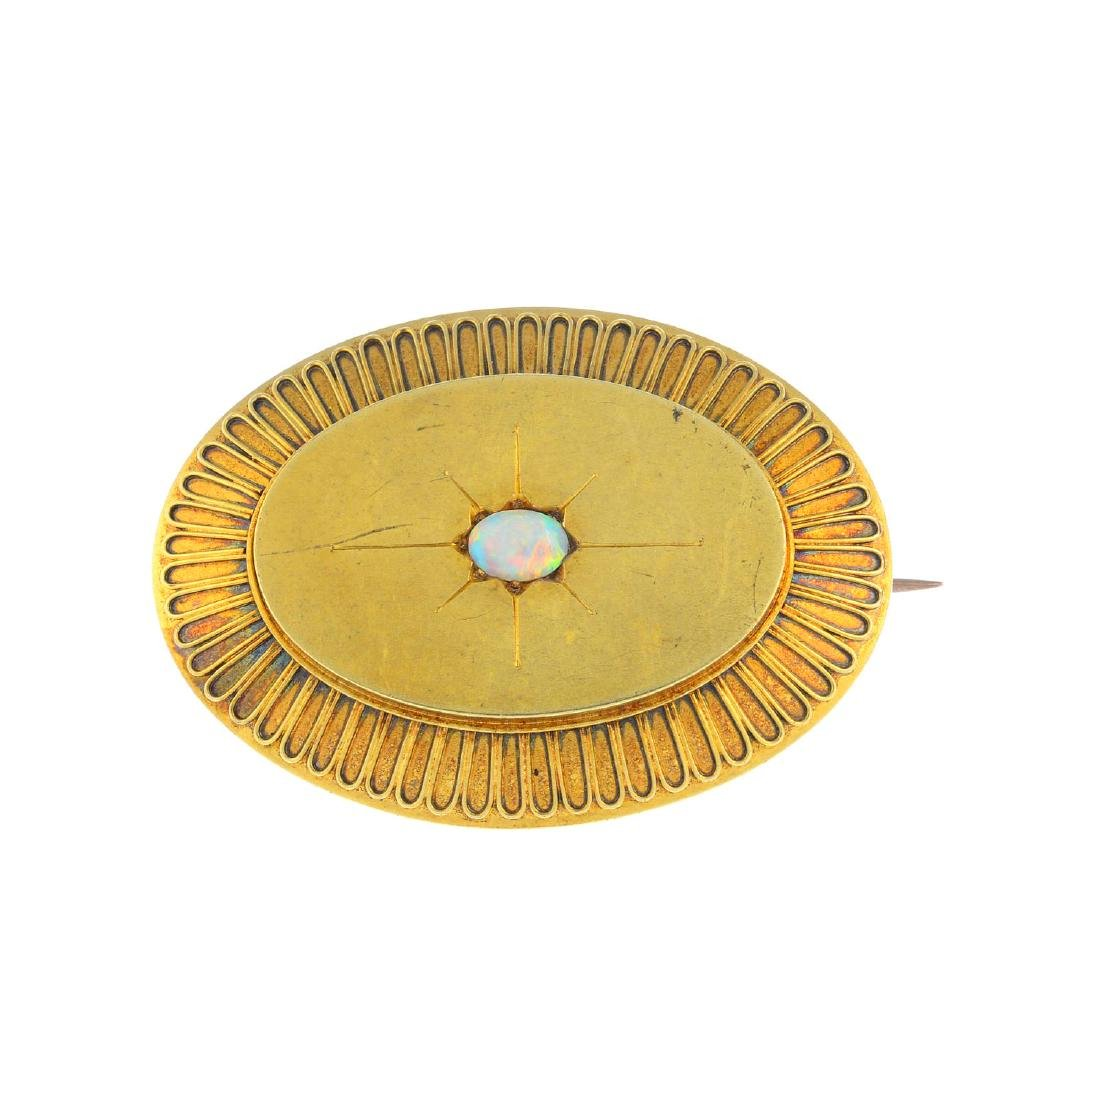 A late Victorian gold opal brooch. The oval opal